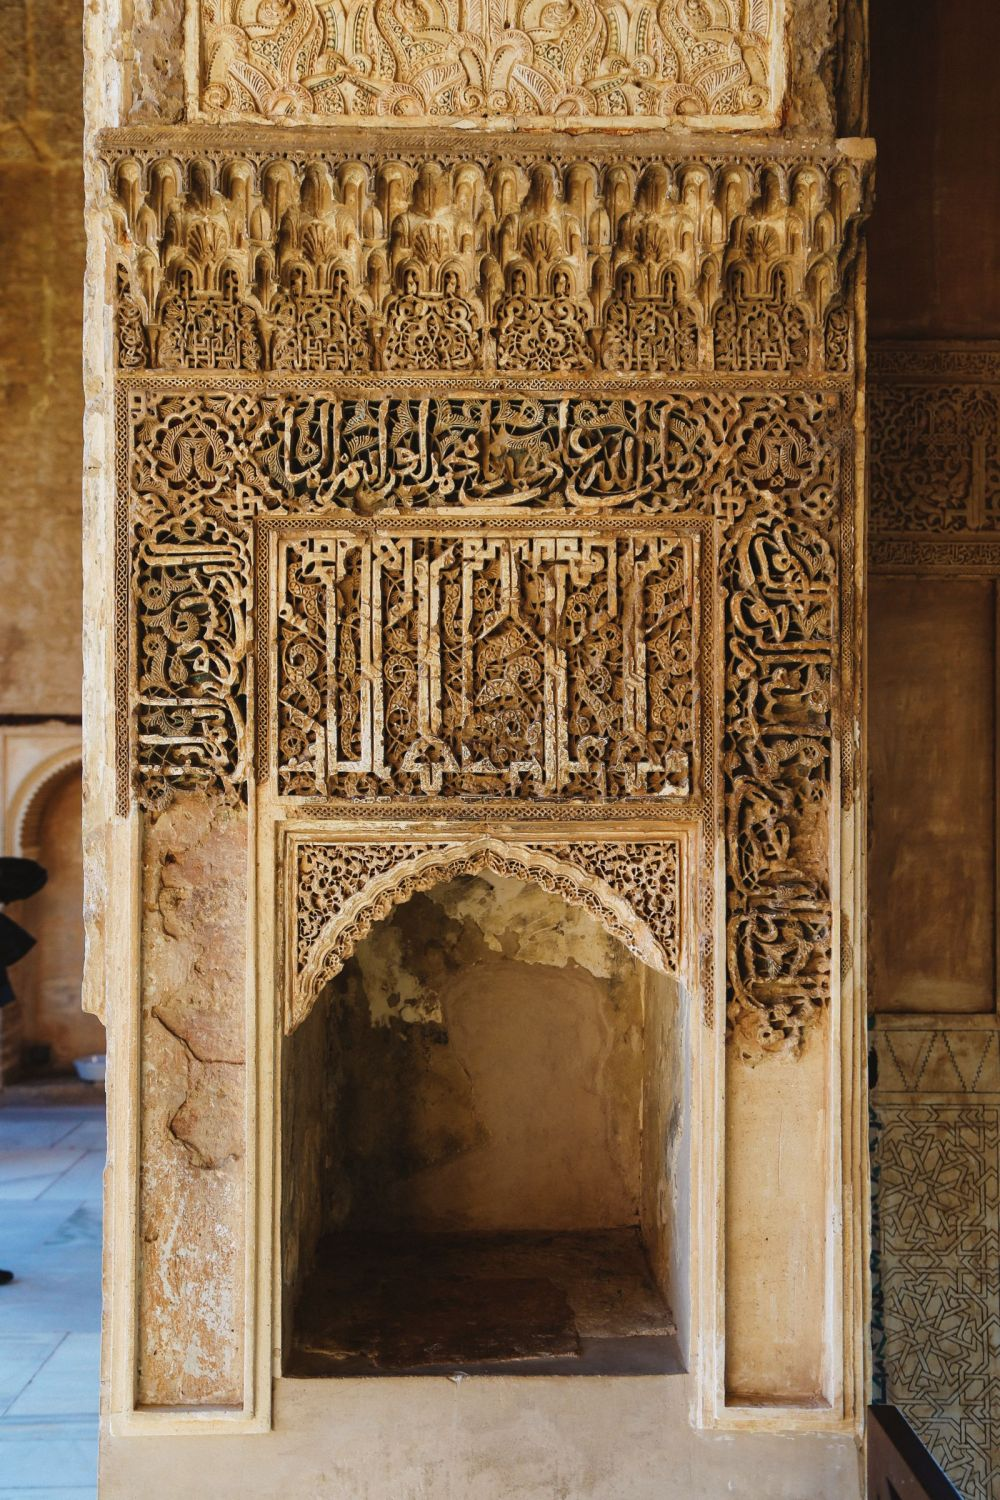 The Amazingly Intricate Alhambra Palace of Spain (85)